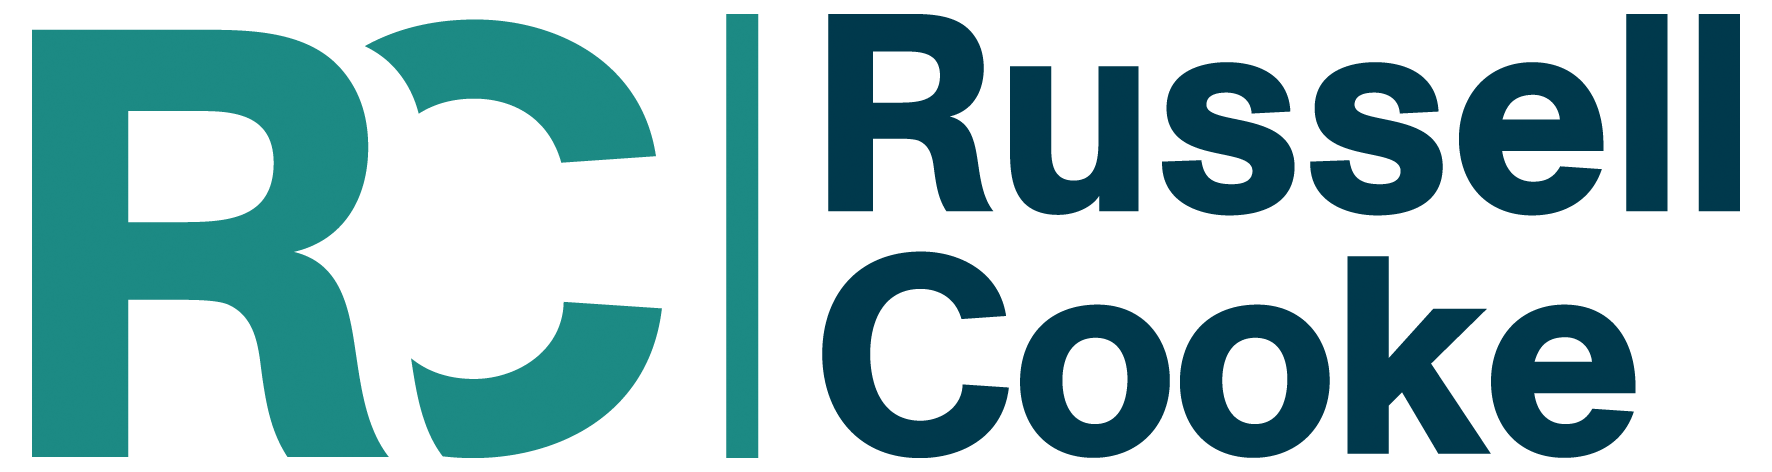 Russell-Cooke_logo.png